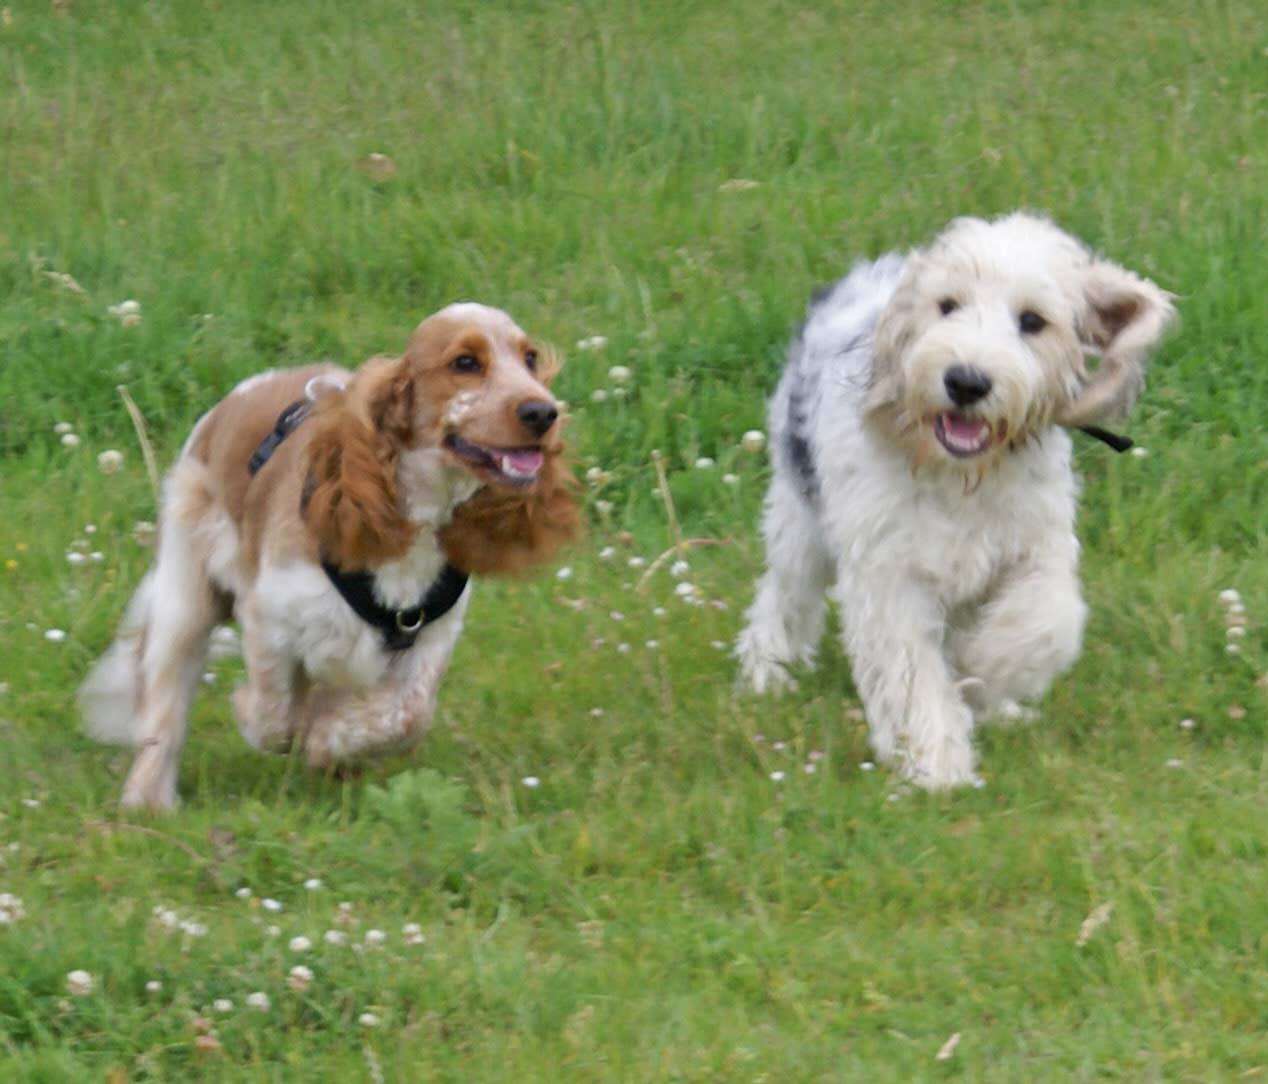 Bertie-in-Park-with-Spaniel-min